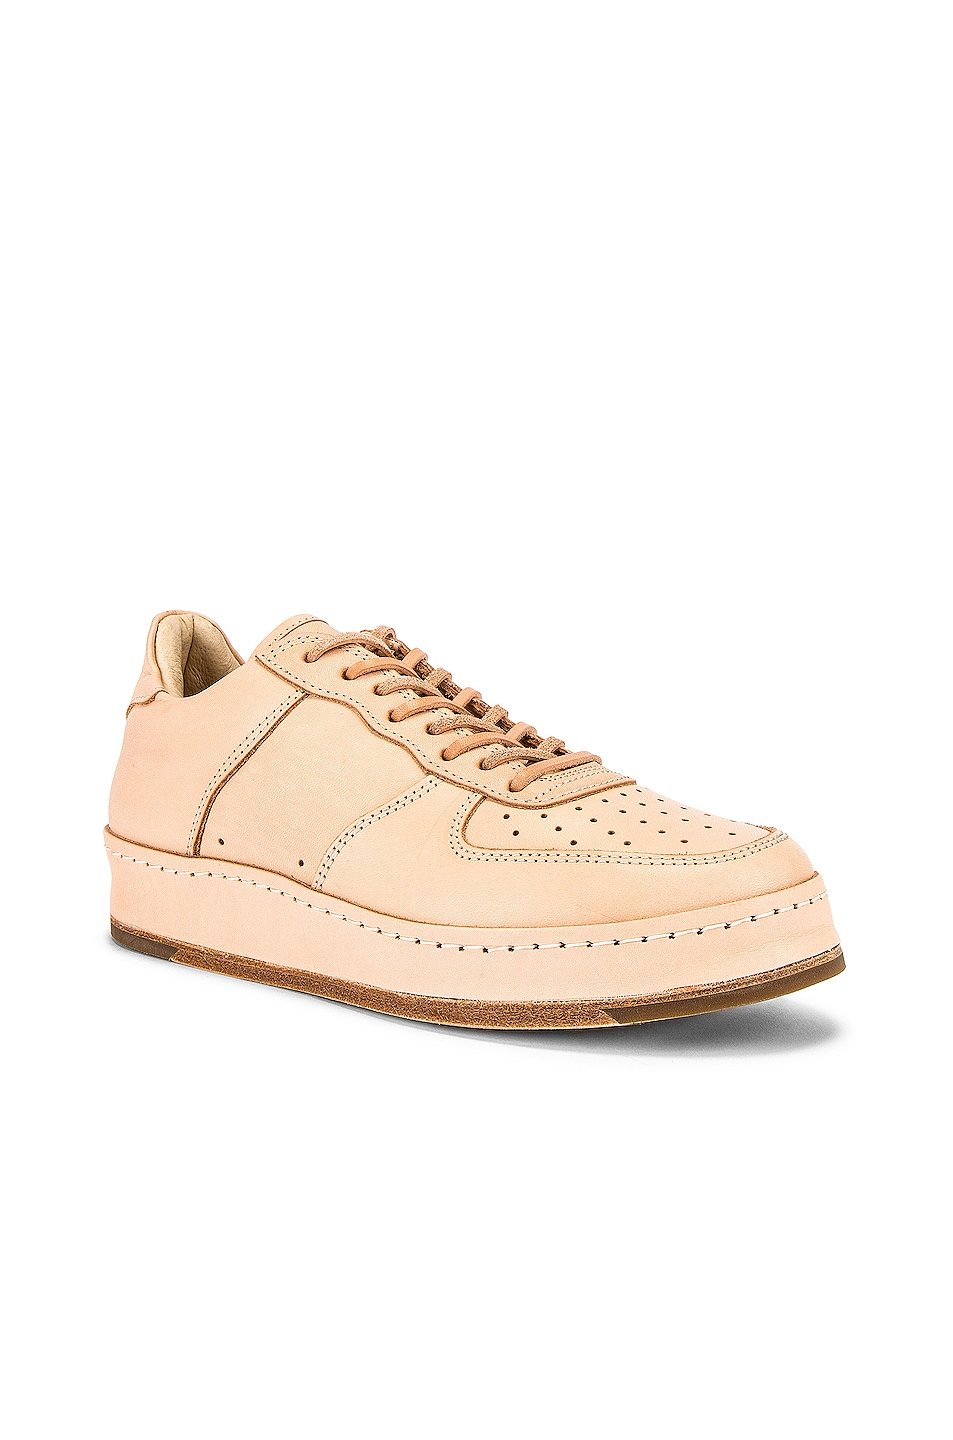 Image 2 of Hender Scheme Manual Industrial Product 22 in Natural